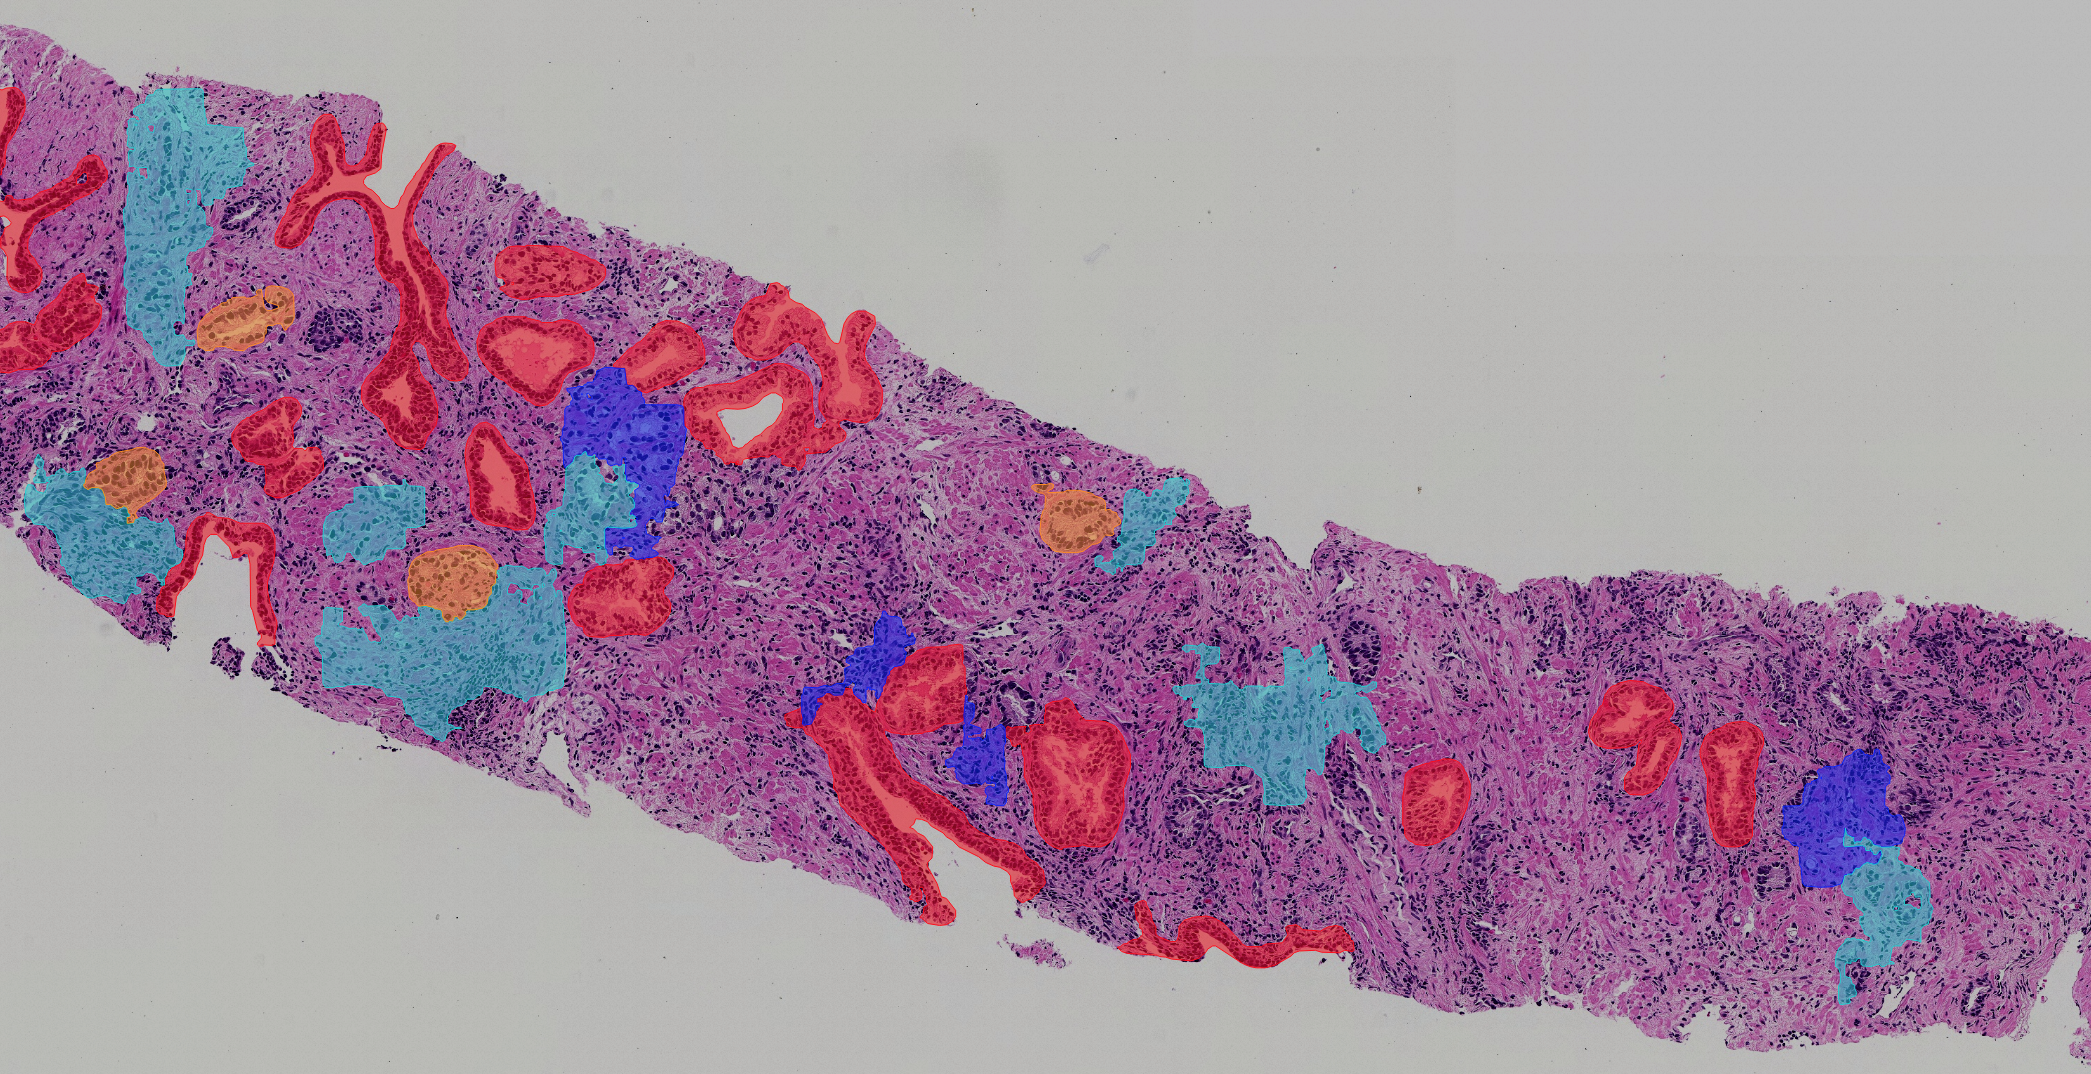 Benefits of AI and digital pathology to the clinical lab: interview with pathologists Dr. Mirtti and Dr. Sandeman